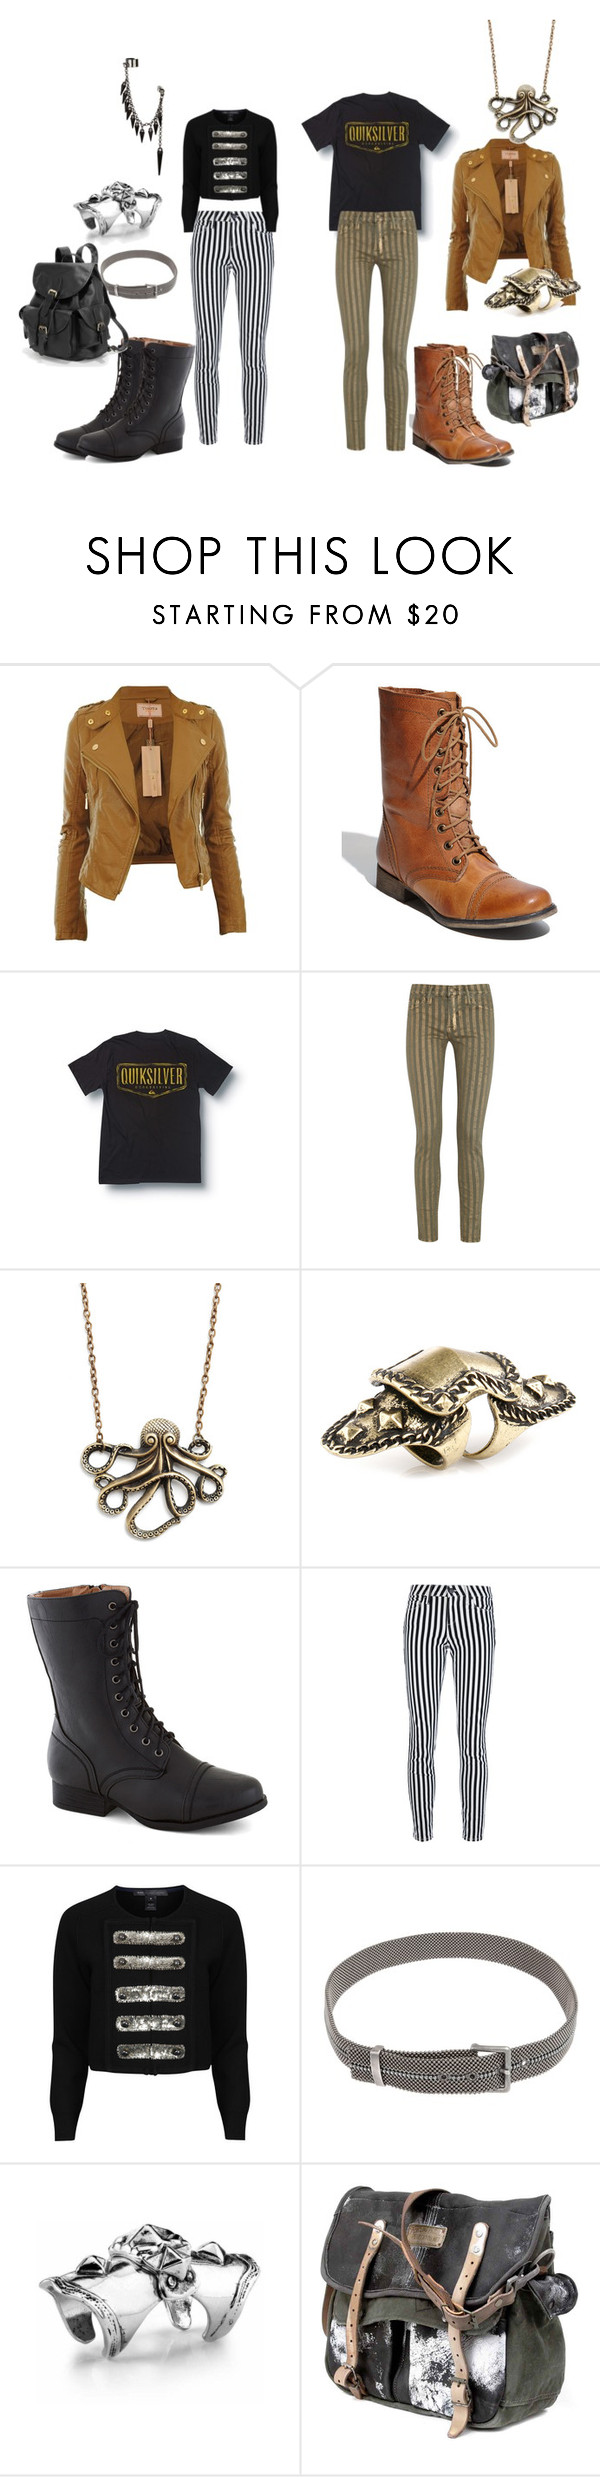 """""""steam casual"""" by moringan ❤ liked on Polyvore featuring Steve Madden, Quiksilver, Hudson, Club Manhattan, Paige Denim, Marc by Marc Jacobs, Laura B, LowLuv, AmeriLeather and stripes"""